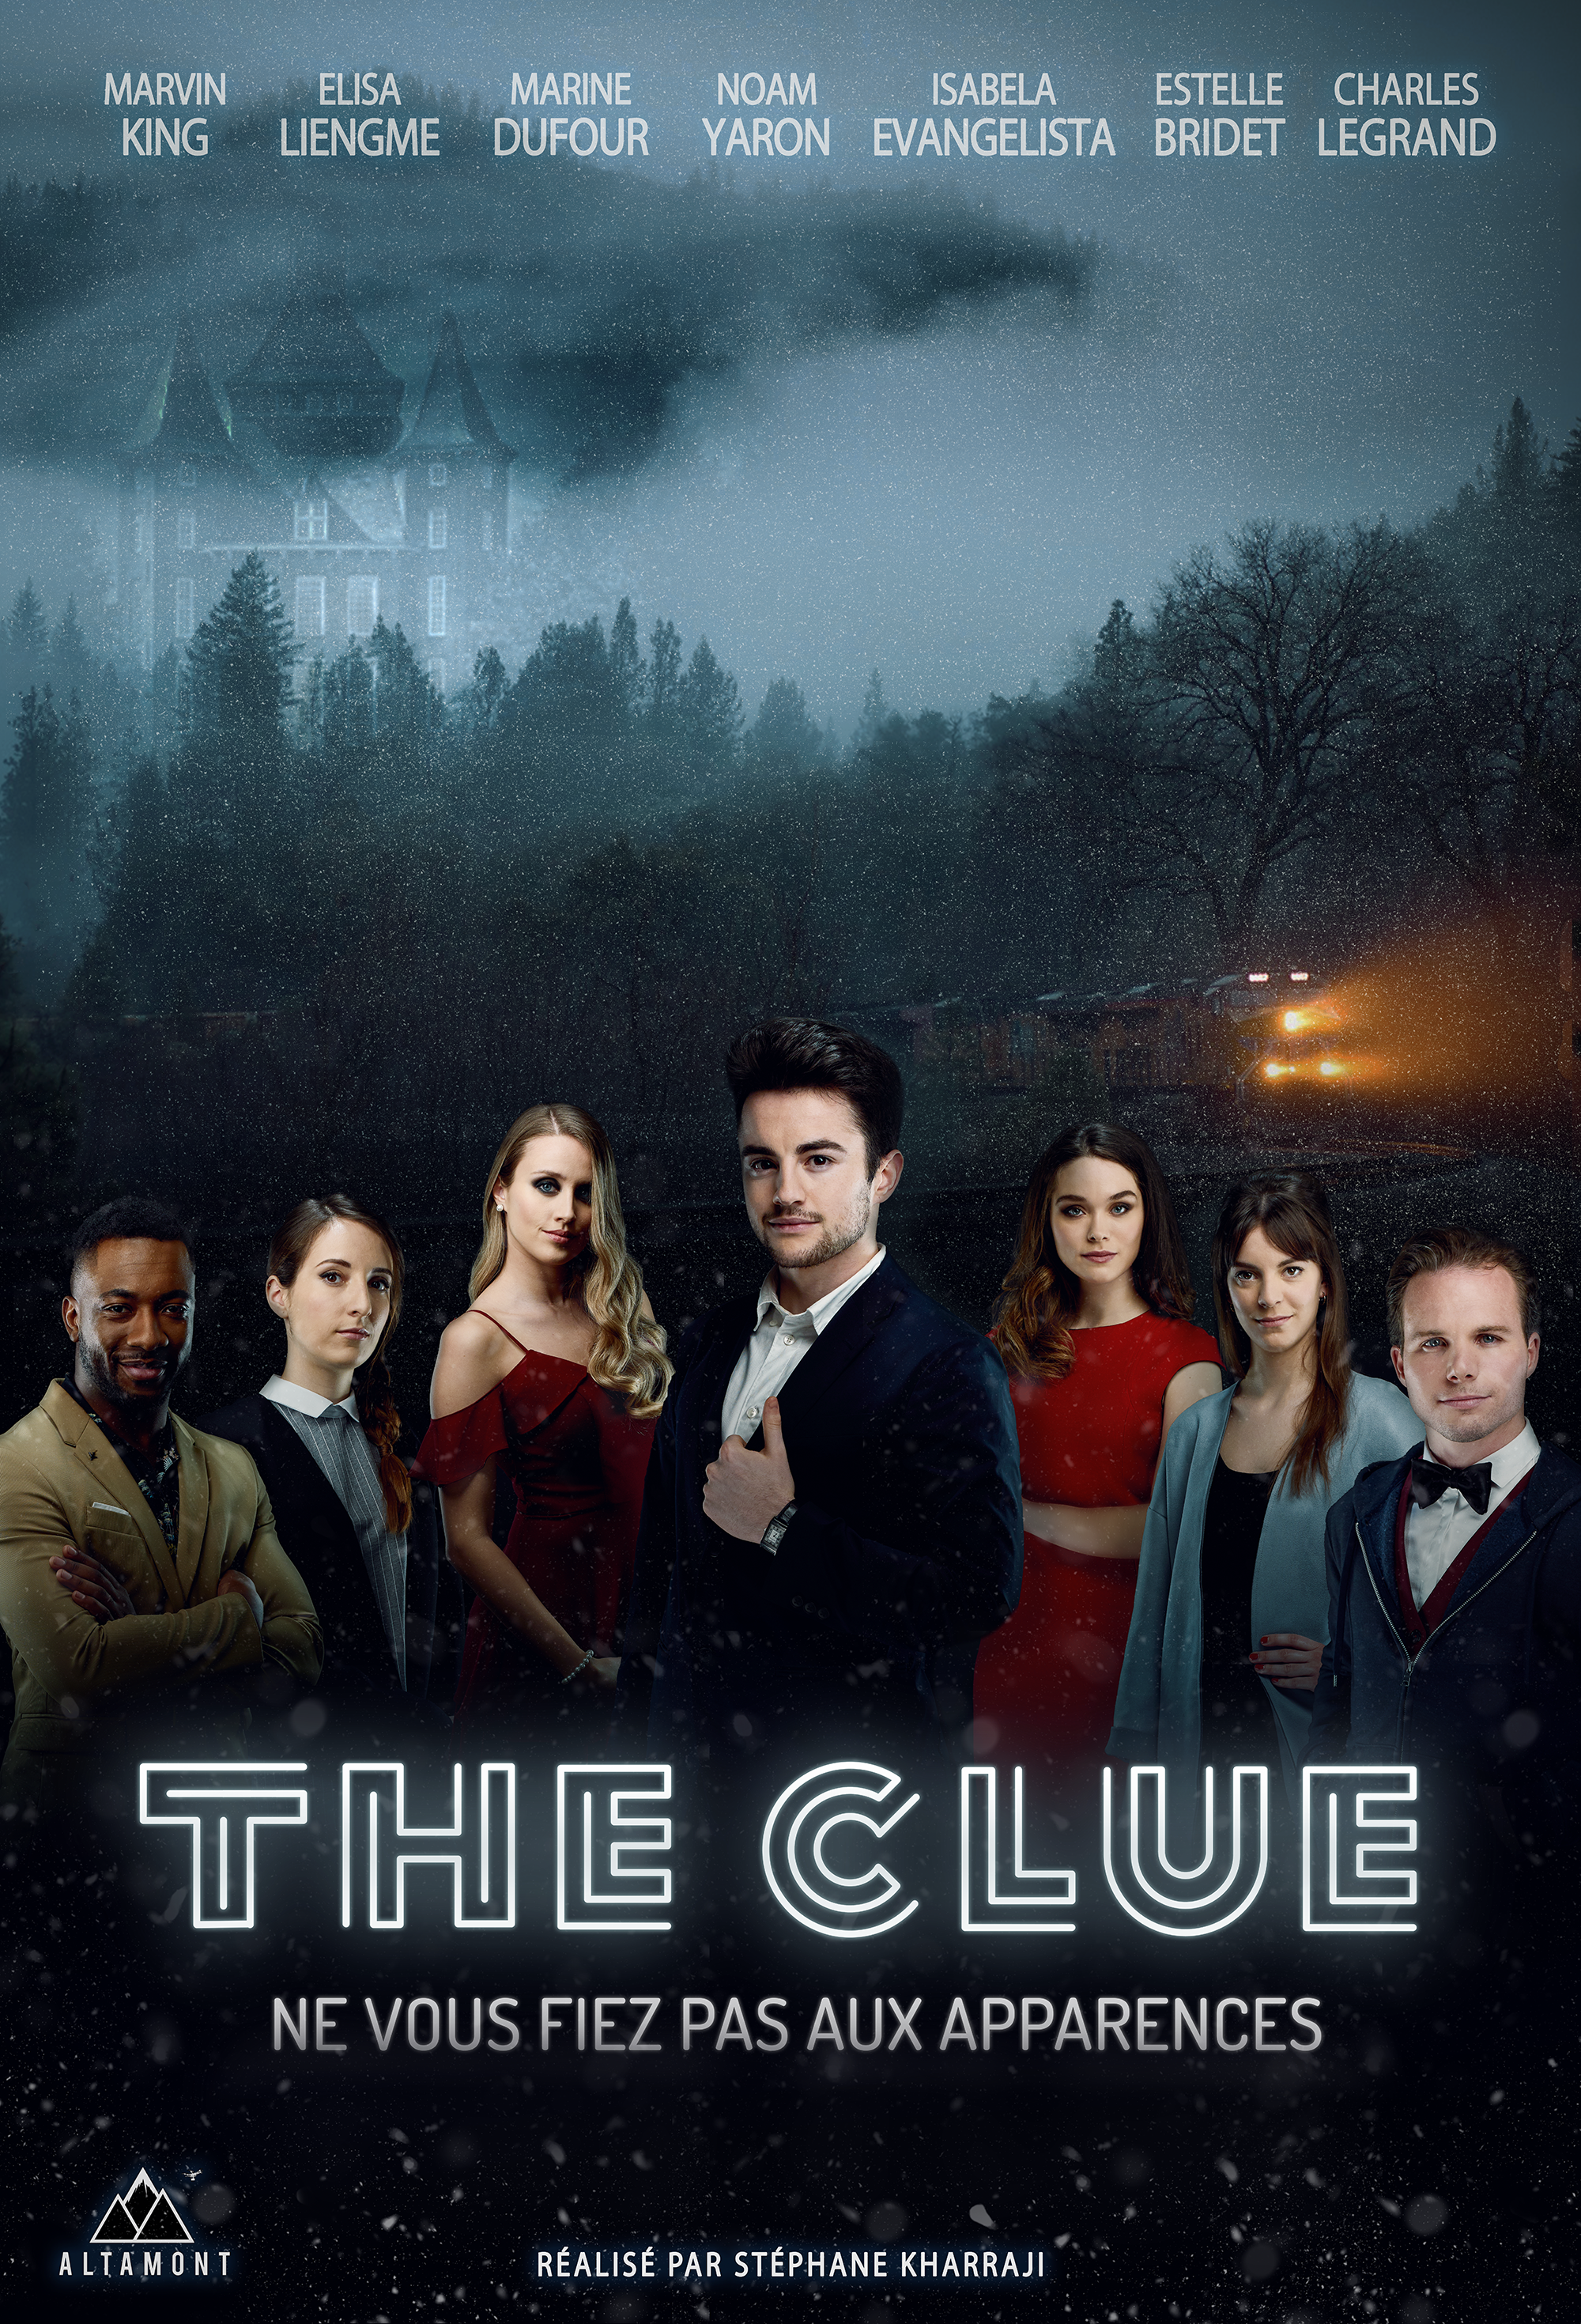 affiche-the-clue-clarisse-sivry.png